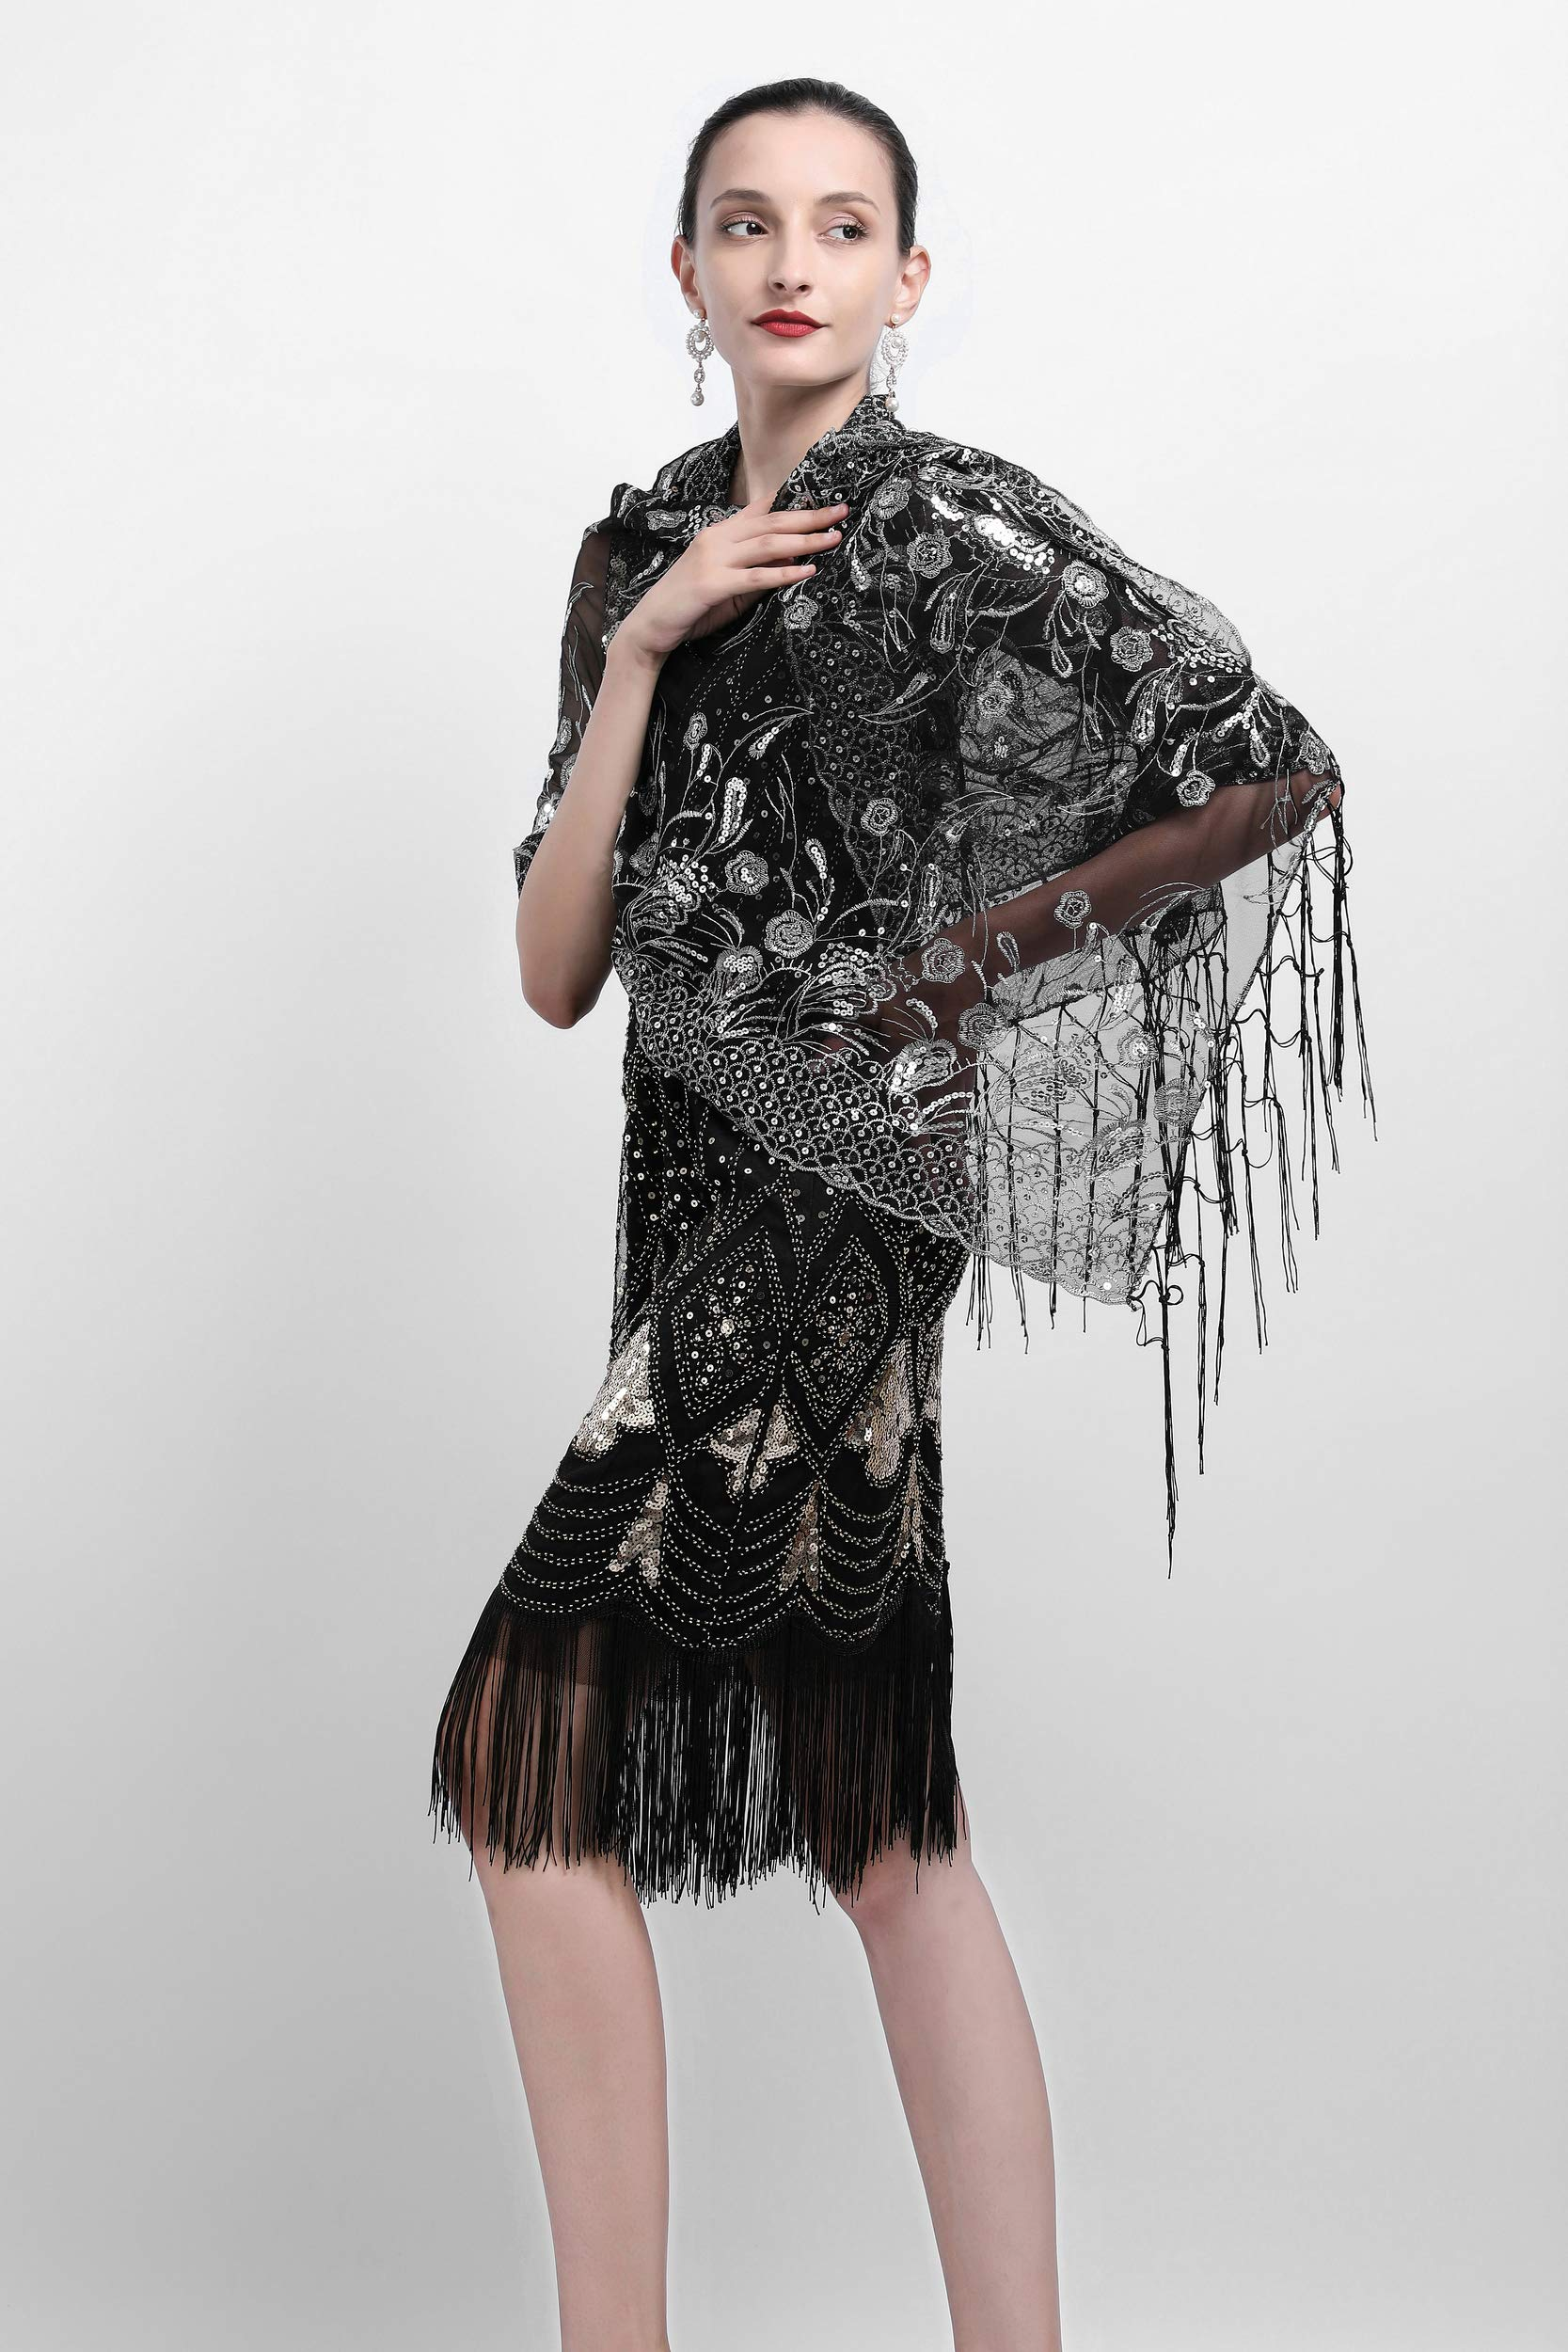 Zivyes 1920s Shawl Beaded Sequin Wraps Evening Cape Wedding Bridal Scarf Flapper Cover up by Zivyes (Image #3)